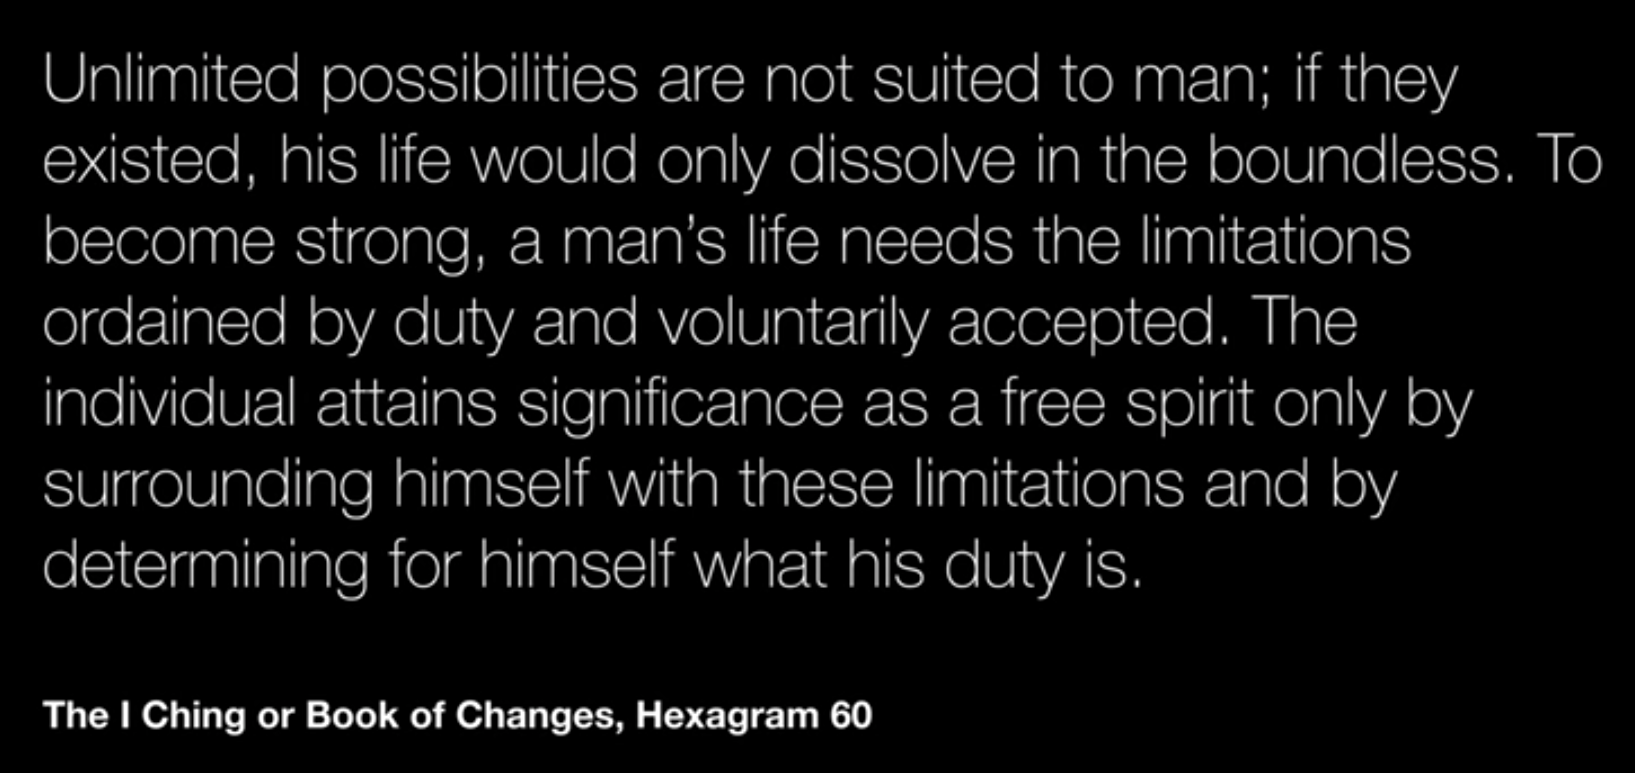 [Image] A man's life needs limitations